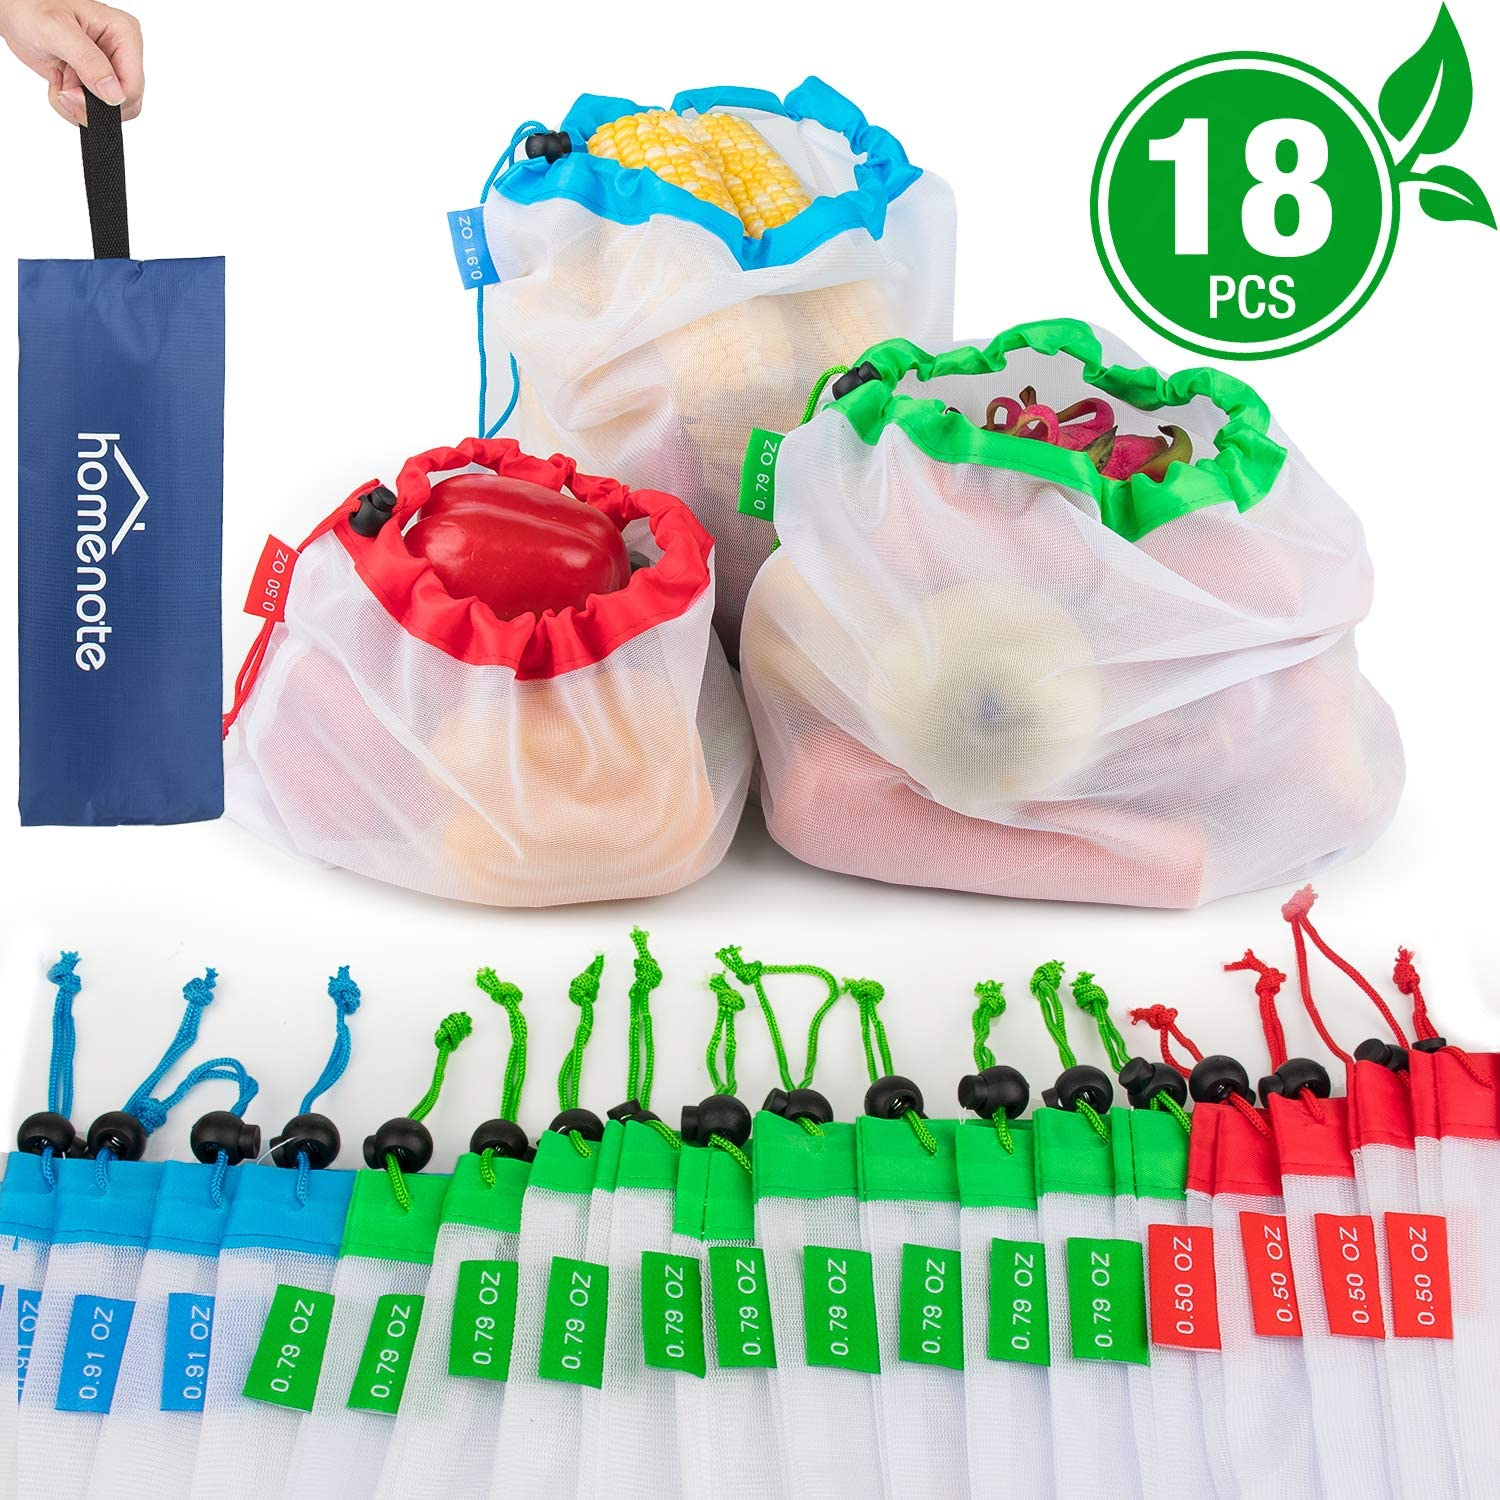 Eco-Friendly Mesh Grocery Bags with Colorful Tare Weight Tags HOMENOTE Reusable Produce Bags 12Pcs Lightweight and Washable